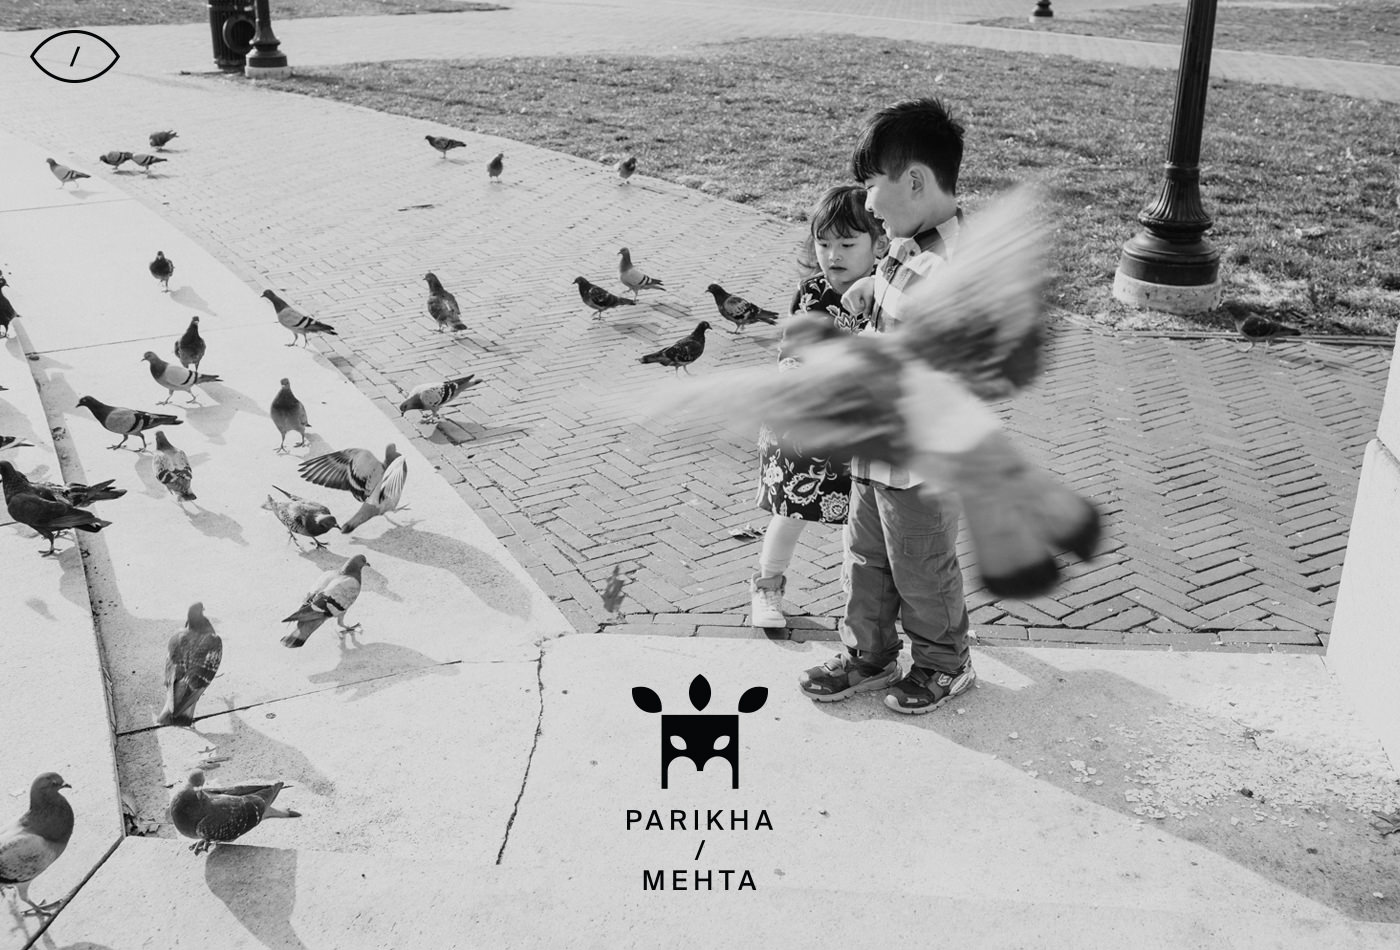 parikha-mehta-parikhamehta-photography-philadelphia-philly-family-editorial-pm-branding-brand-deer-logo-freelace-vacaliebres